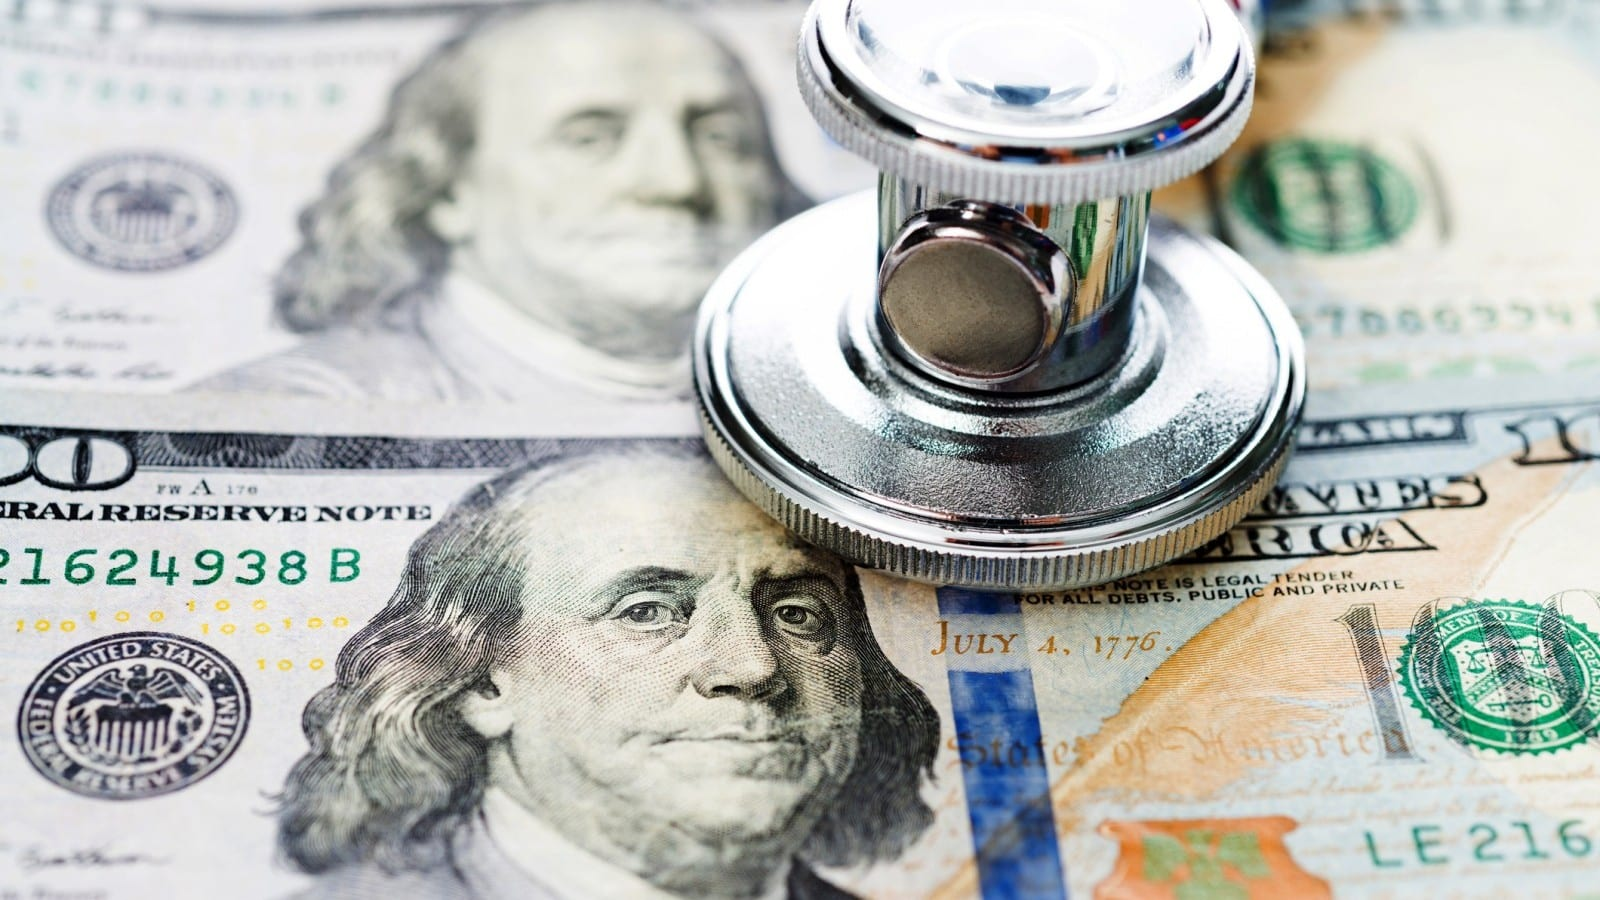 Dollar Bills Stethoscope Stock Photo